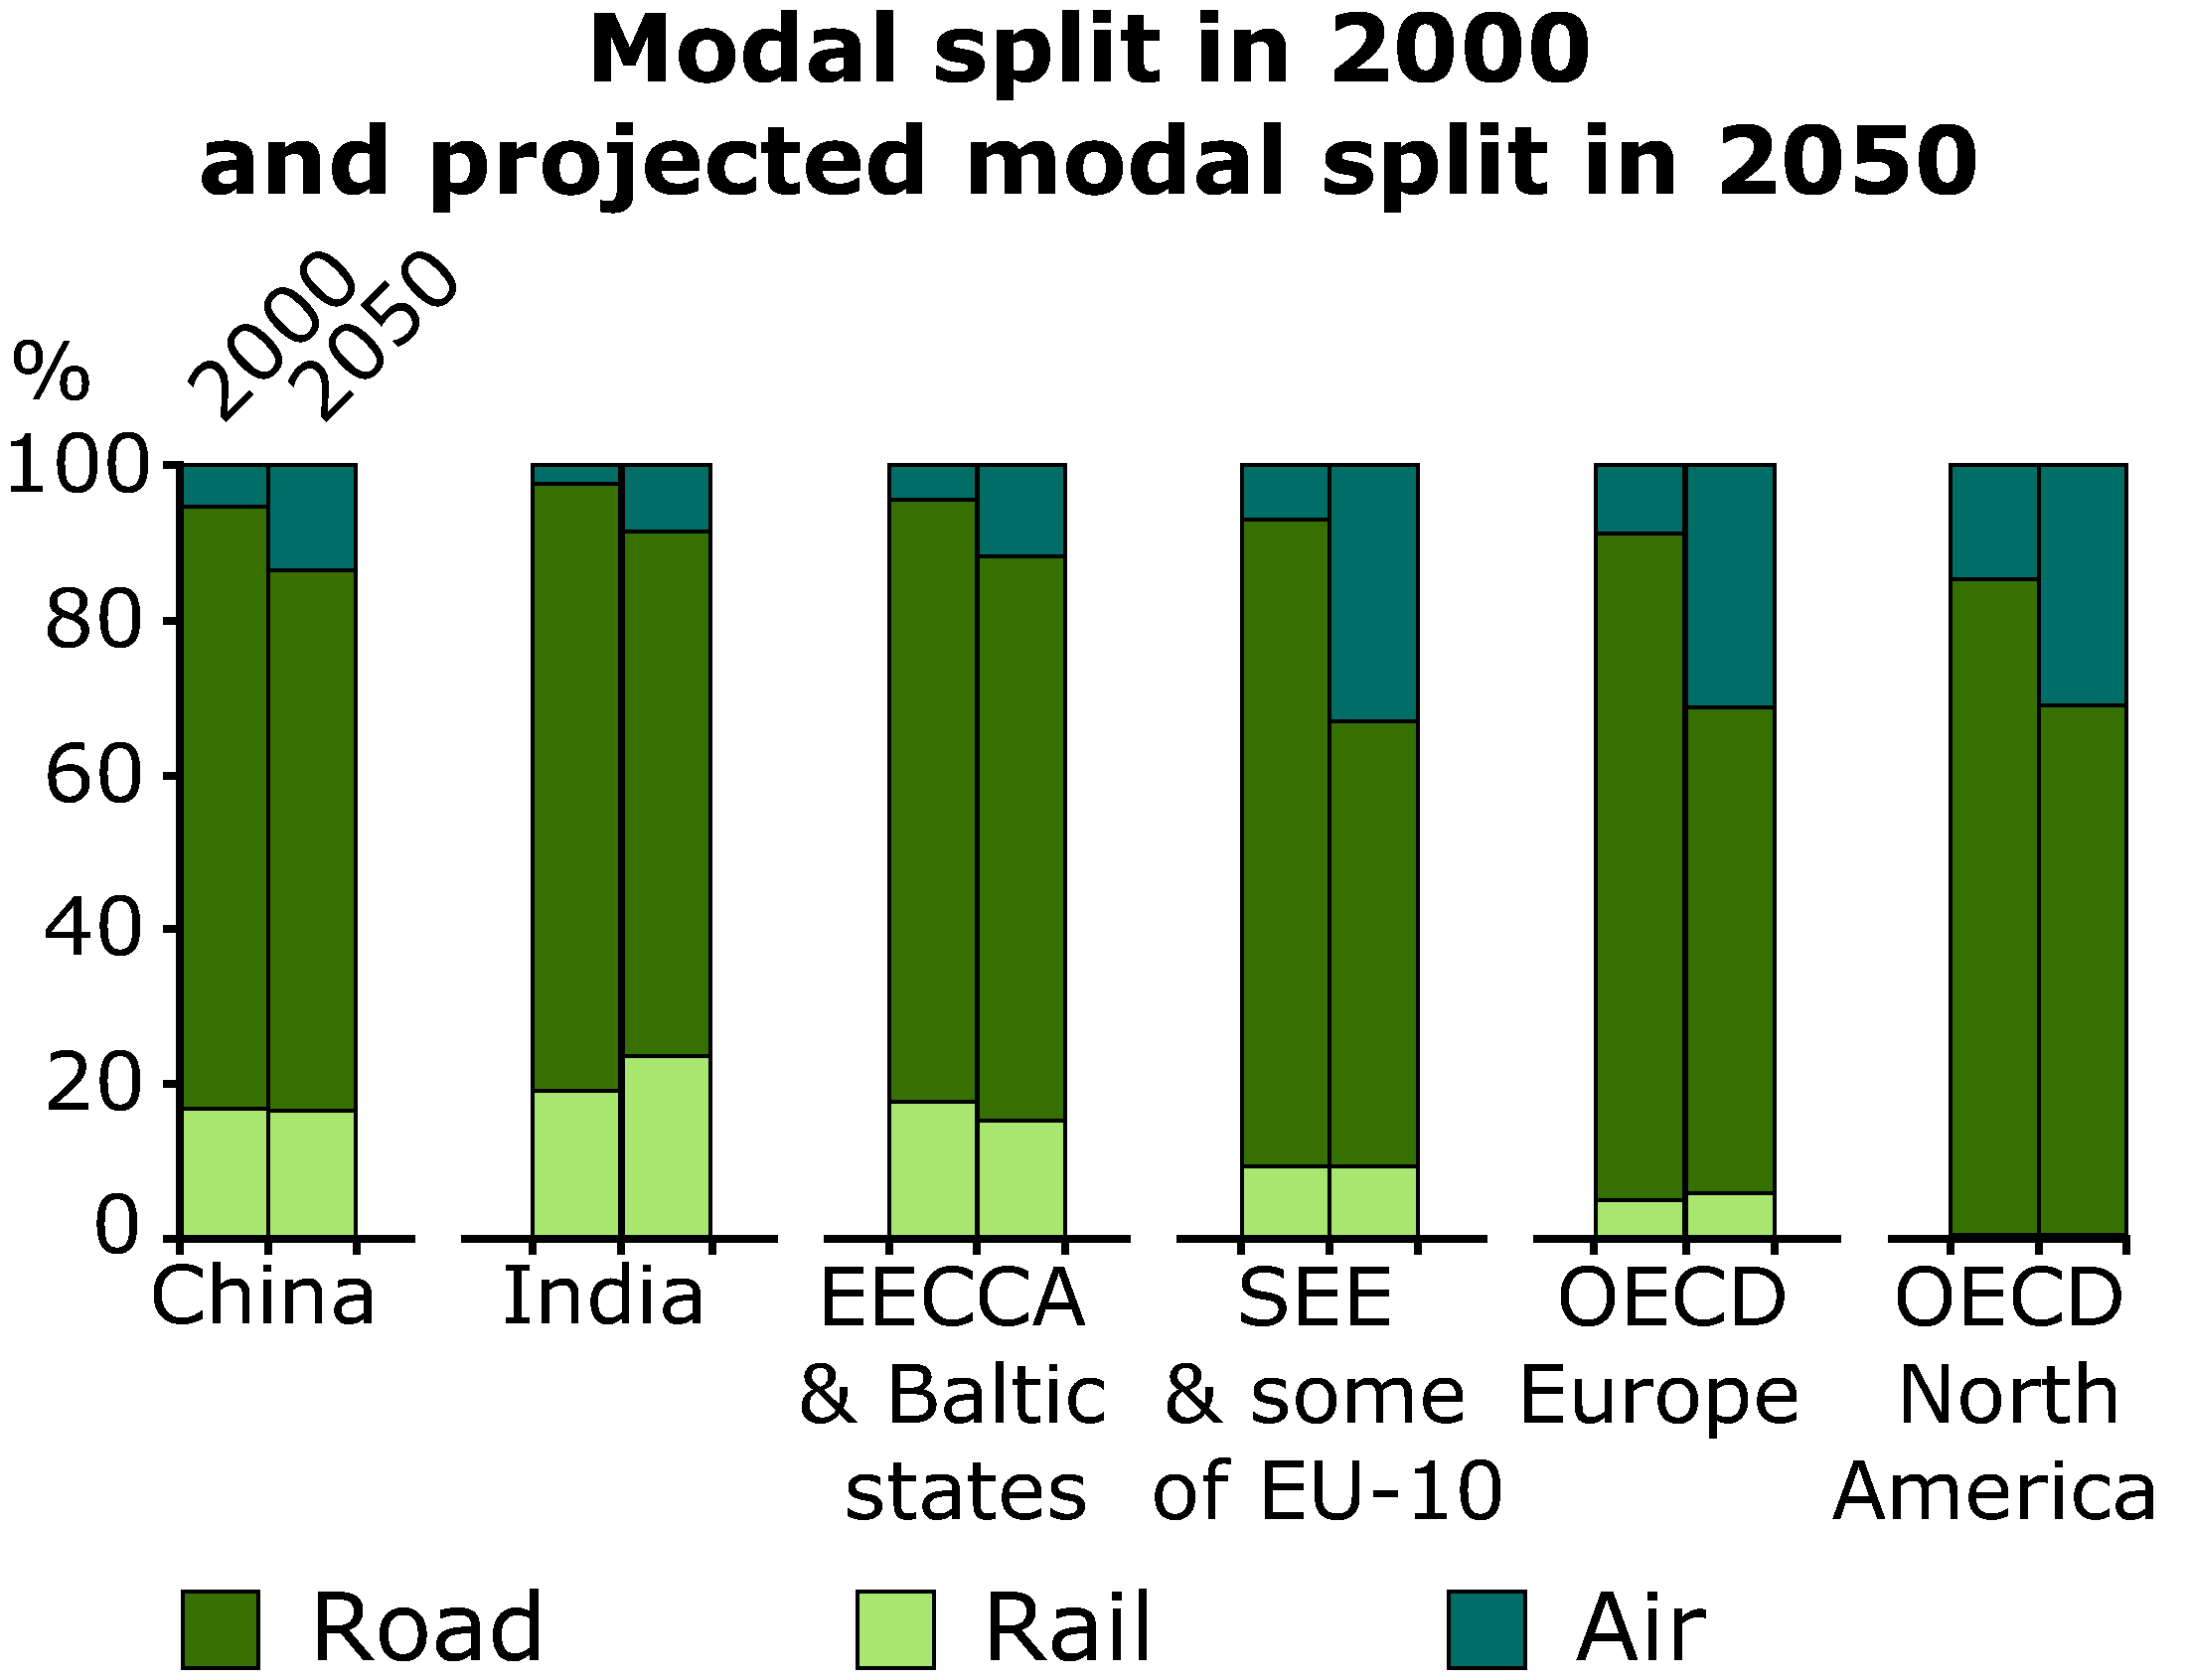 Modal split in 2000 and projected modal split in 2050